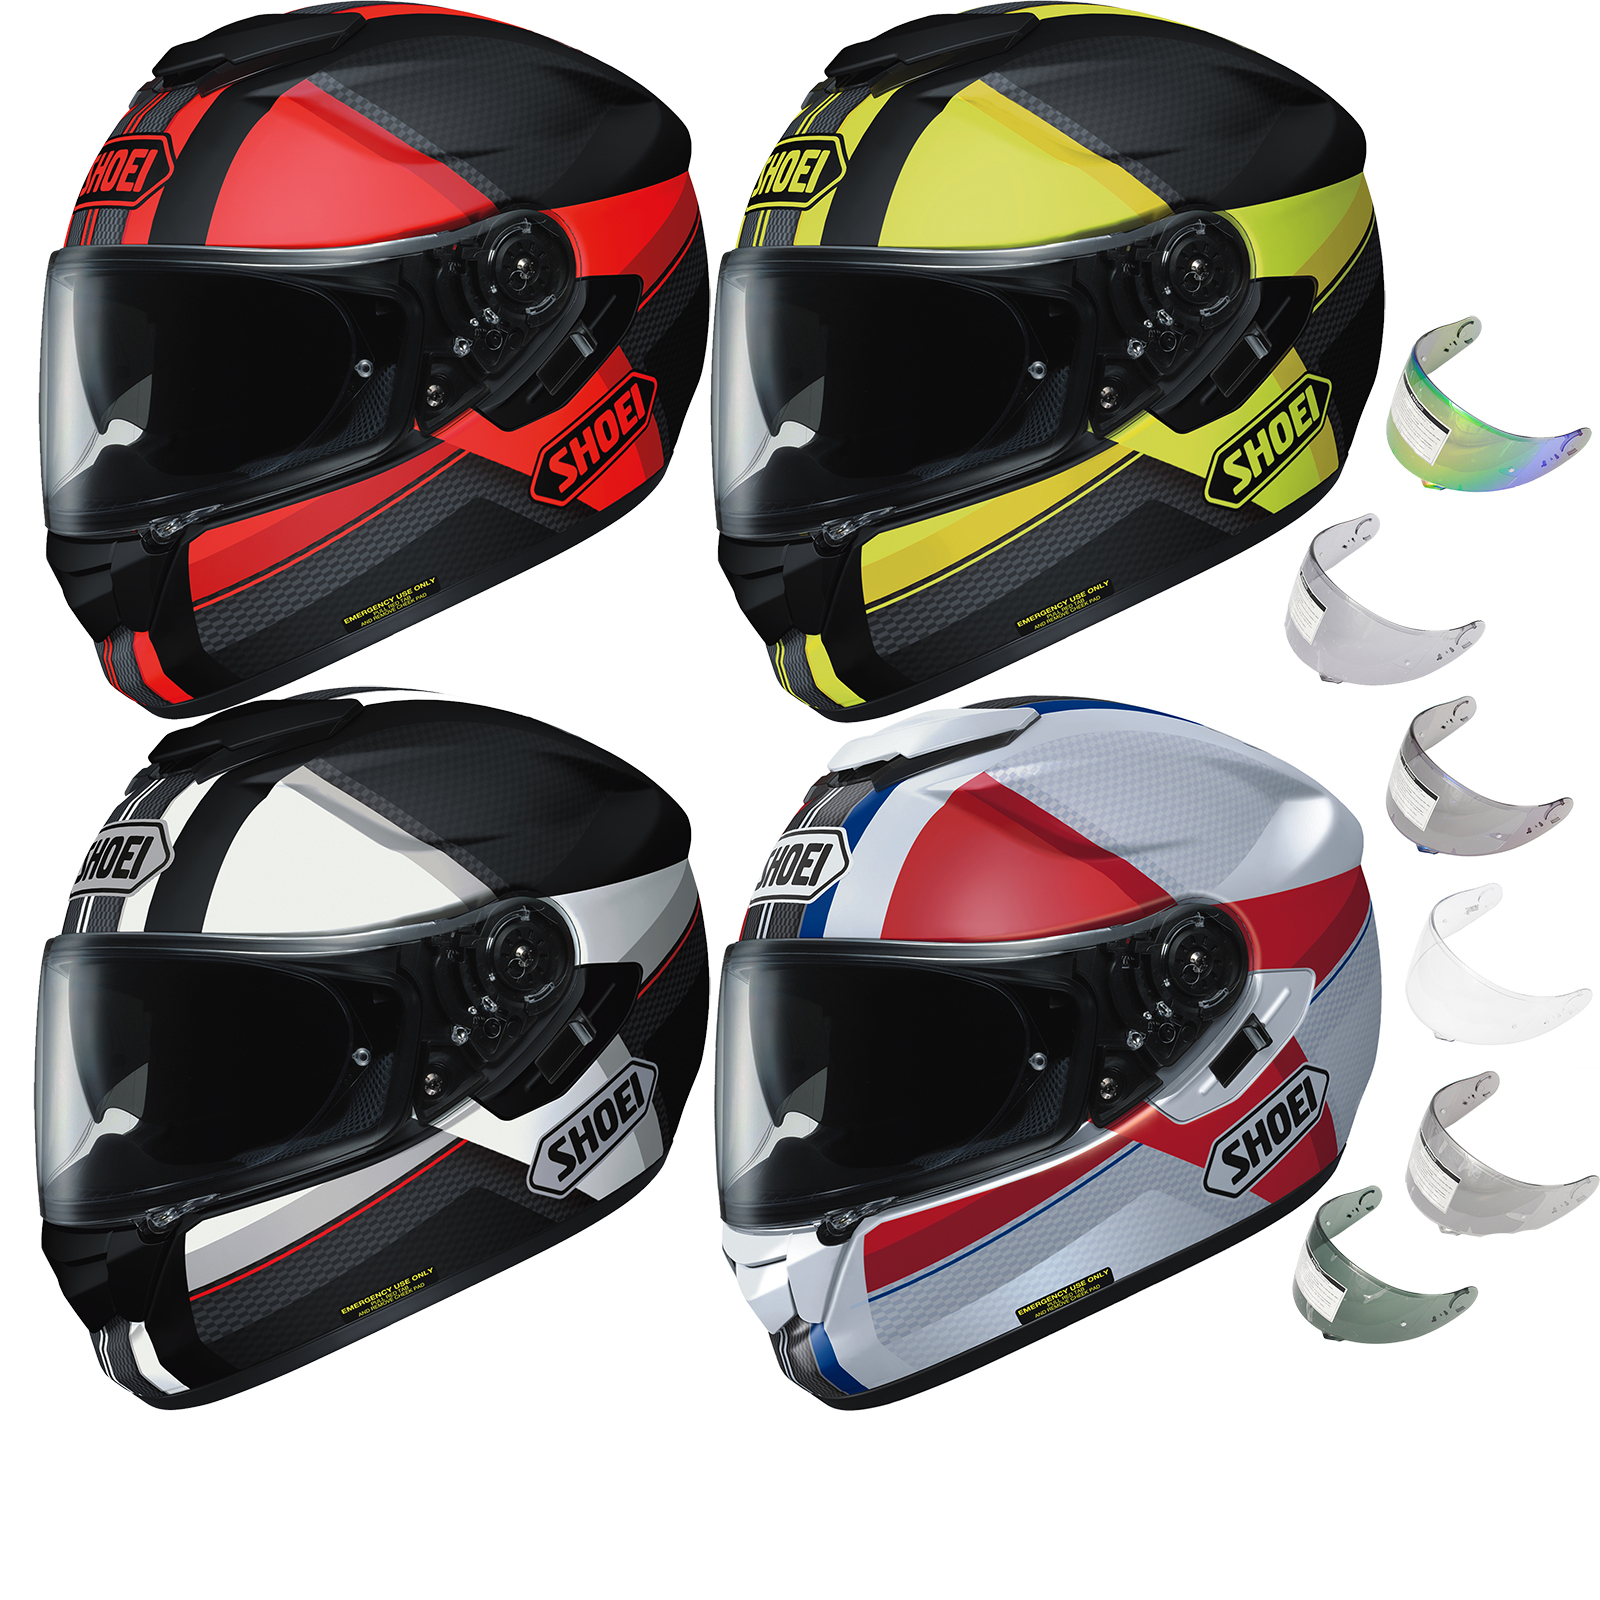 shoei gt air exposure motorcycle helmet visor gt air helmets. Black Bedroom Furniture Sets. Home Design Ideas